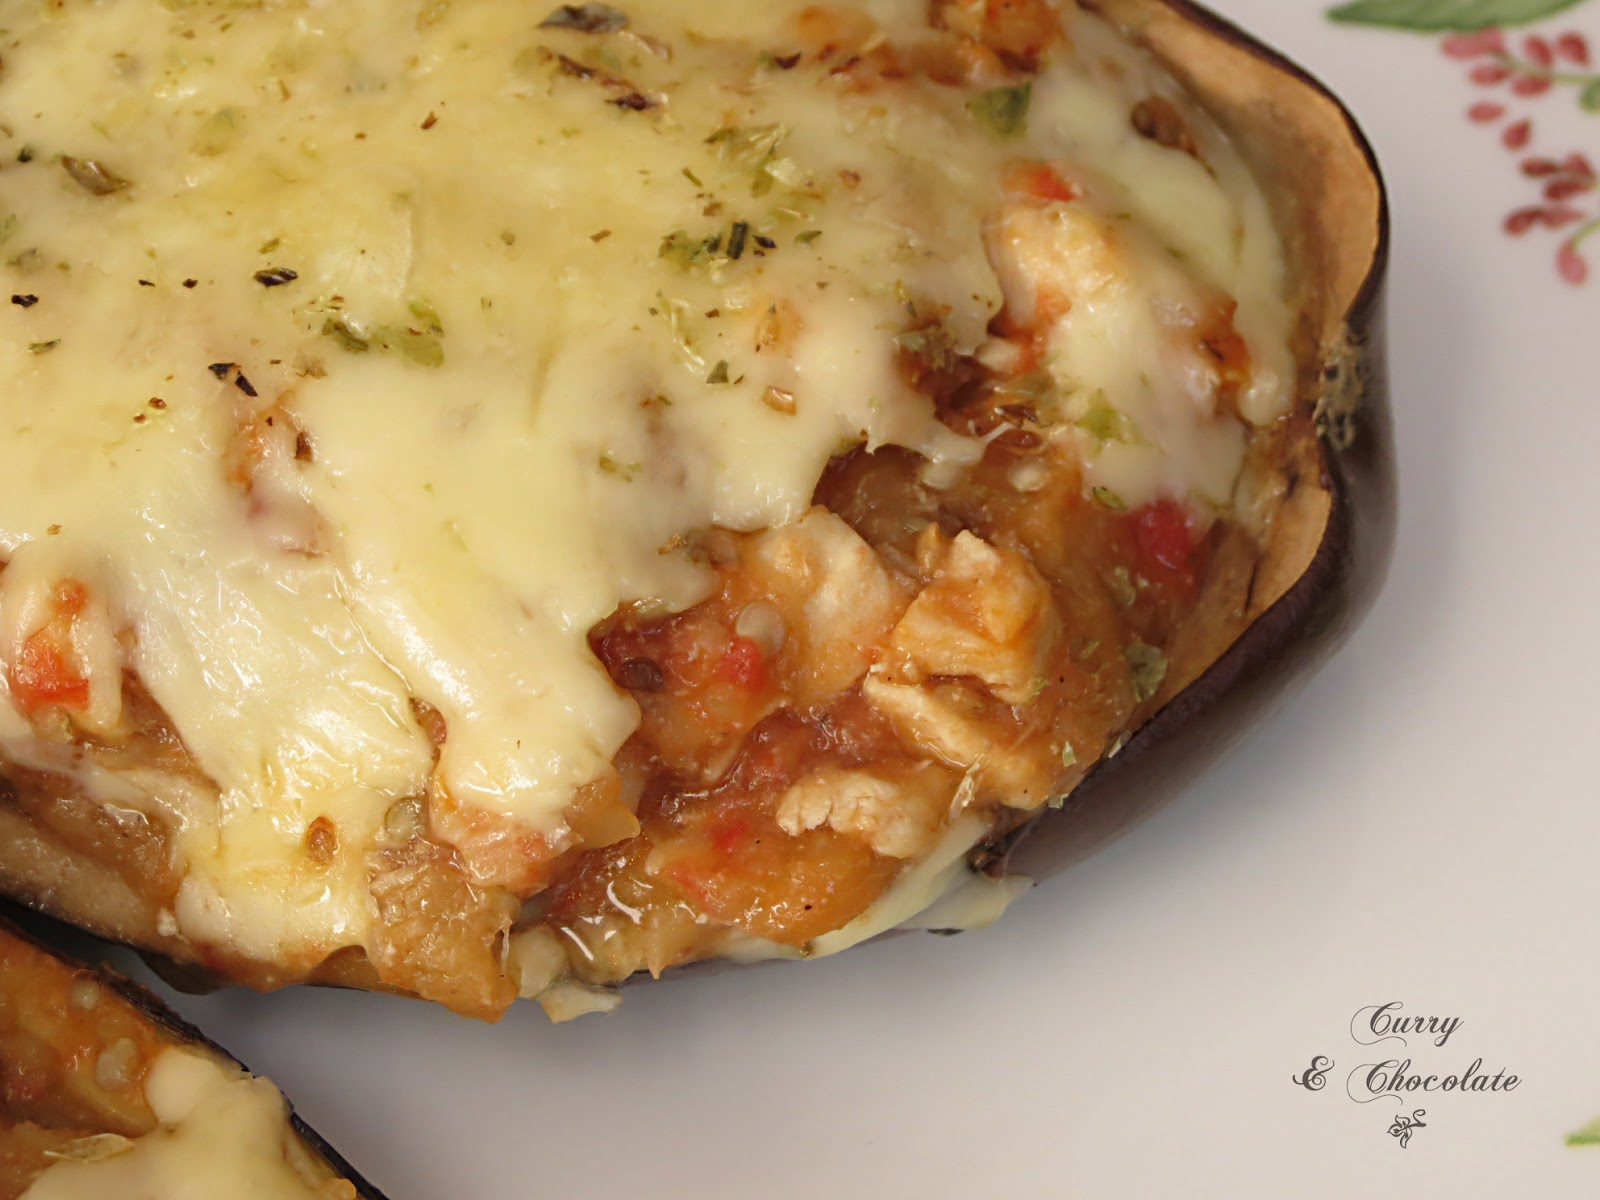 Berenjenas rellenas de pollo y tomate con queso - Chicken stuffed eggplants with tomato and cheese